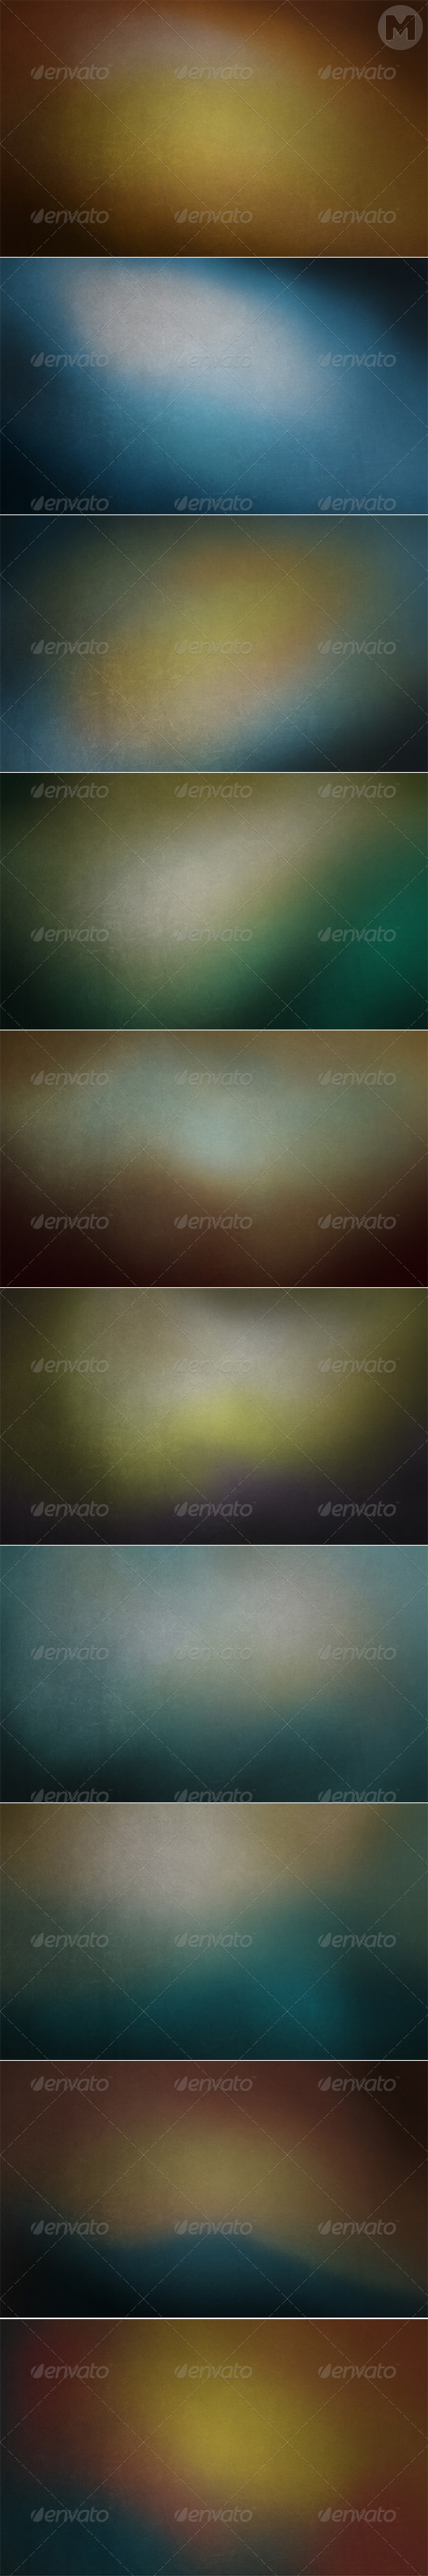 GraphicRiver Grunge Blurred Backgrounds 7643250